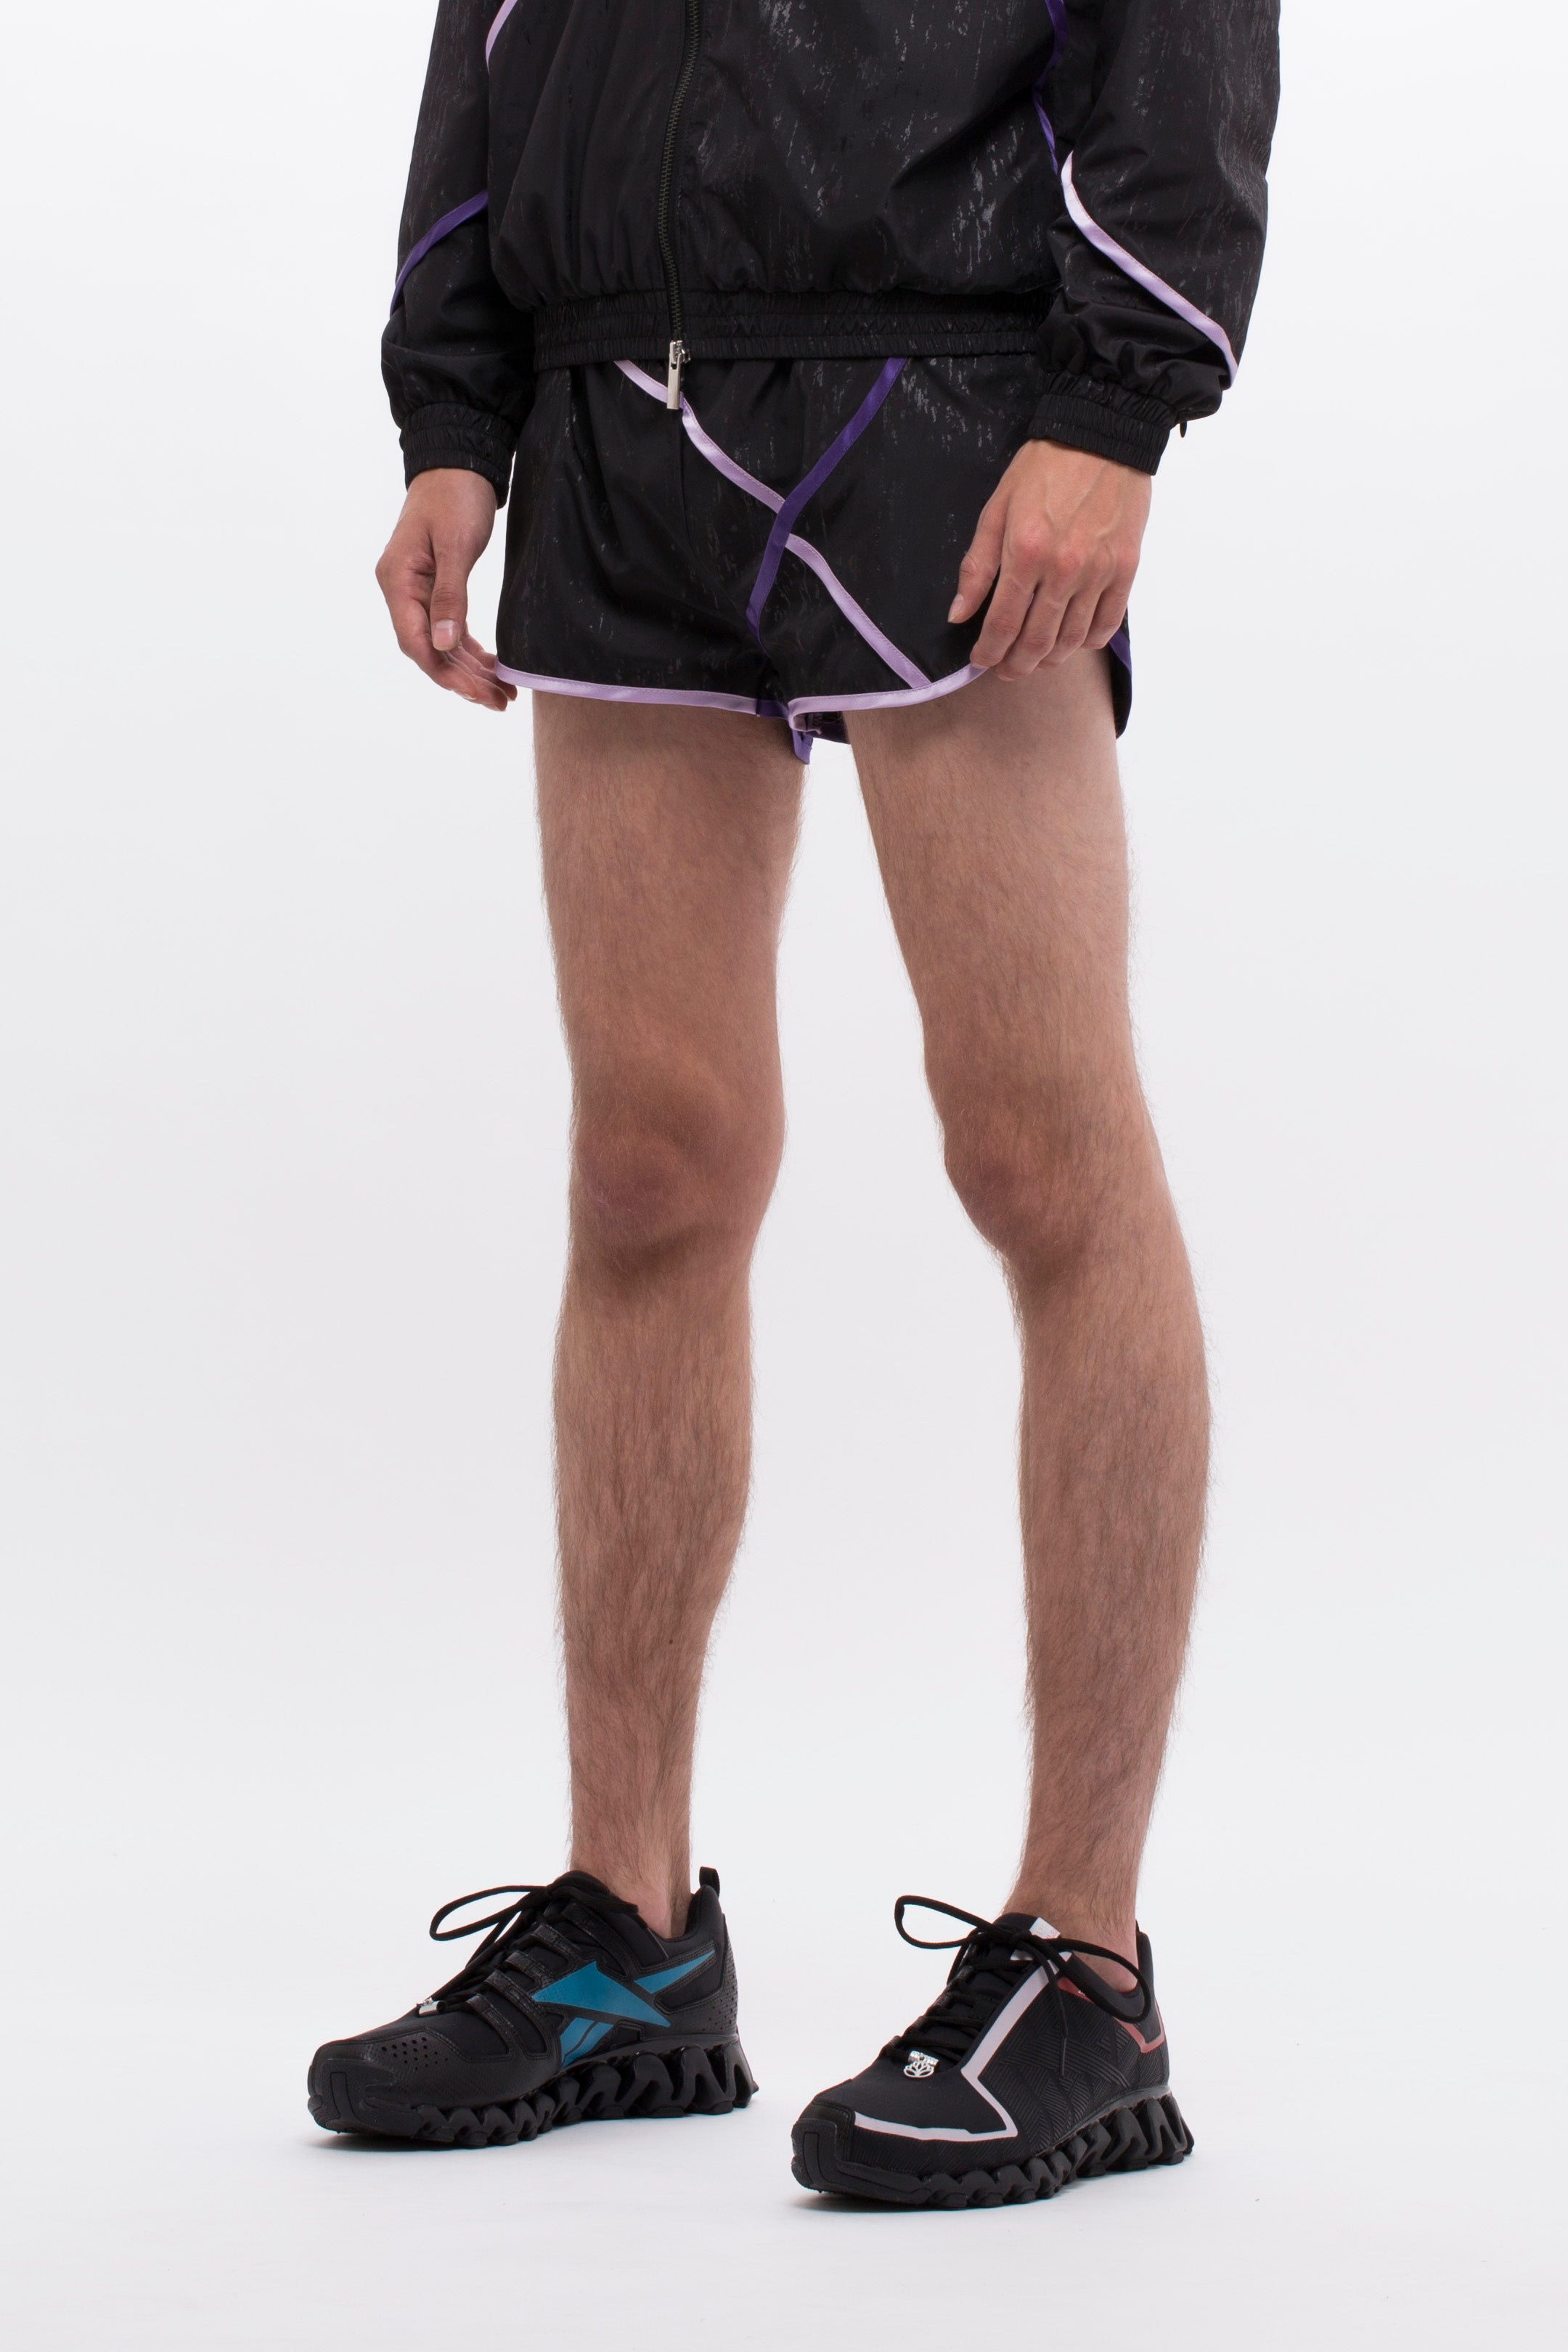 SIGNATURE RUNNING SHORTS - BLACK